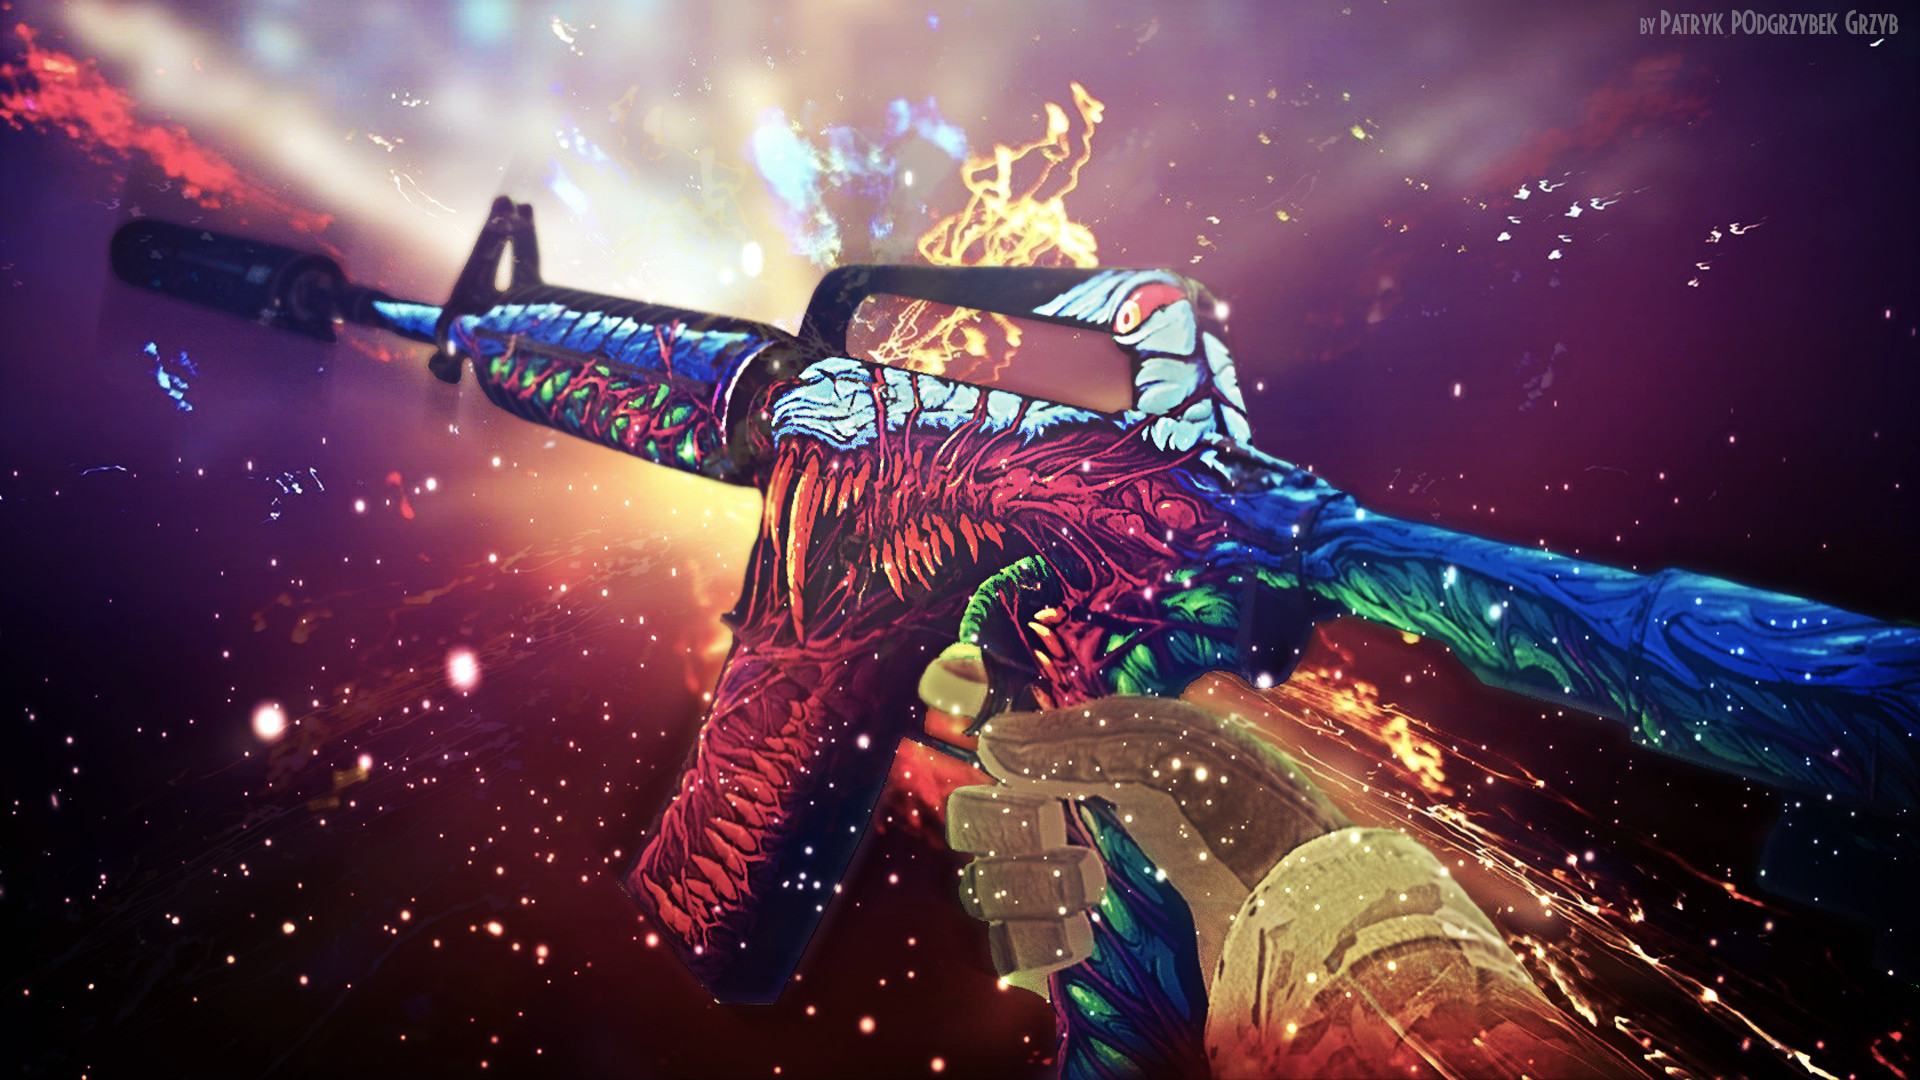 Res: 1920x1080, Steam Community :: :: m4a1-s | Hyper Beast - Wallpaper by Patryk